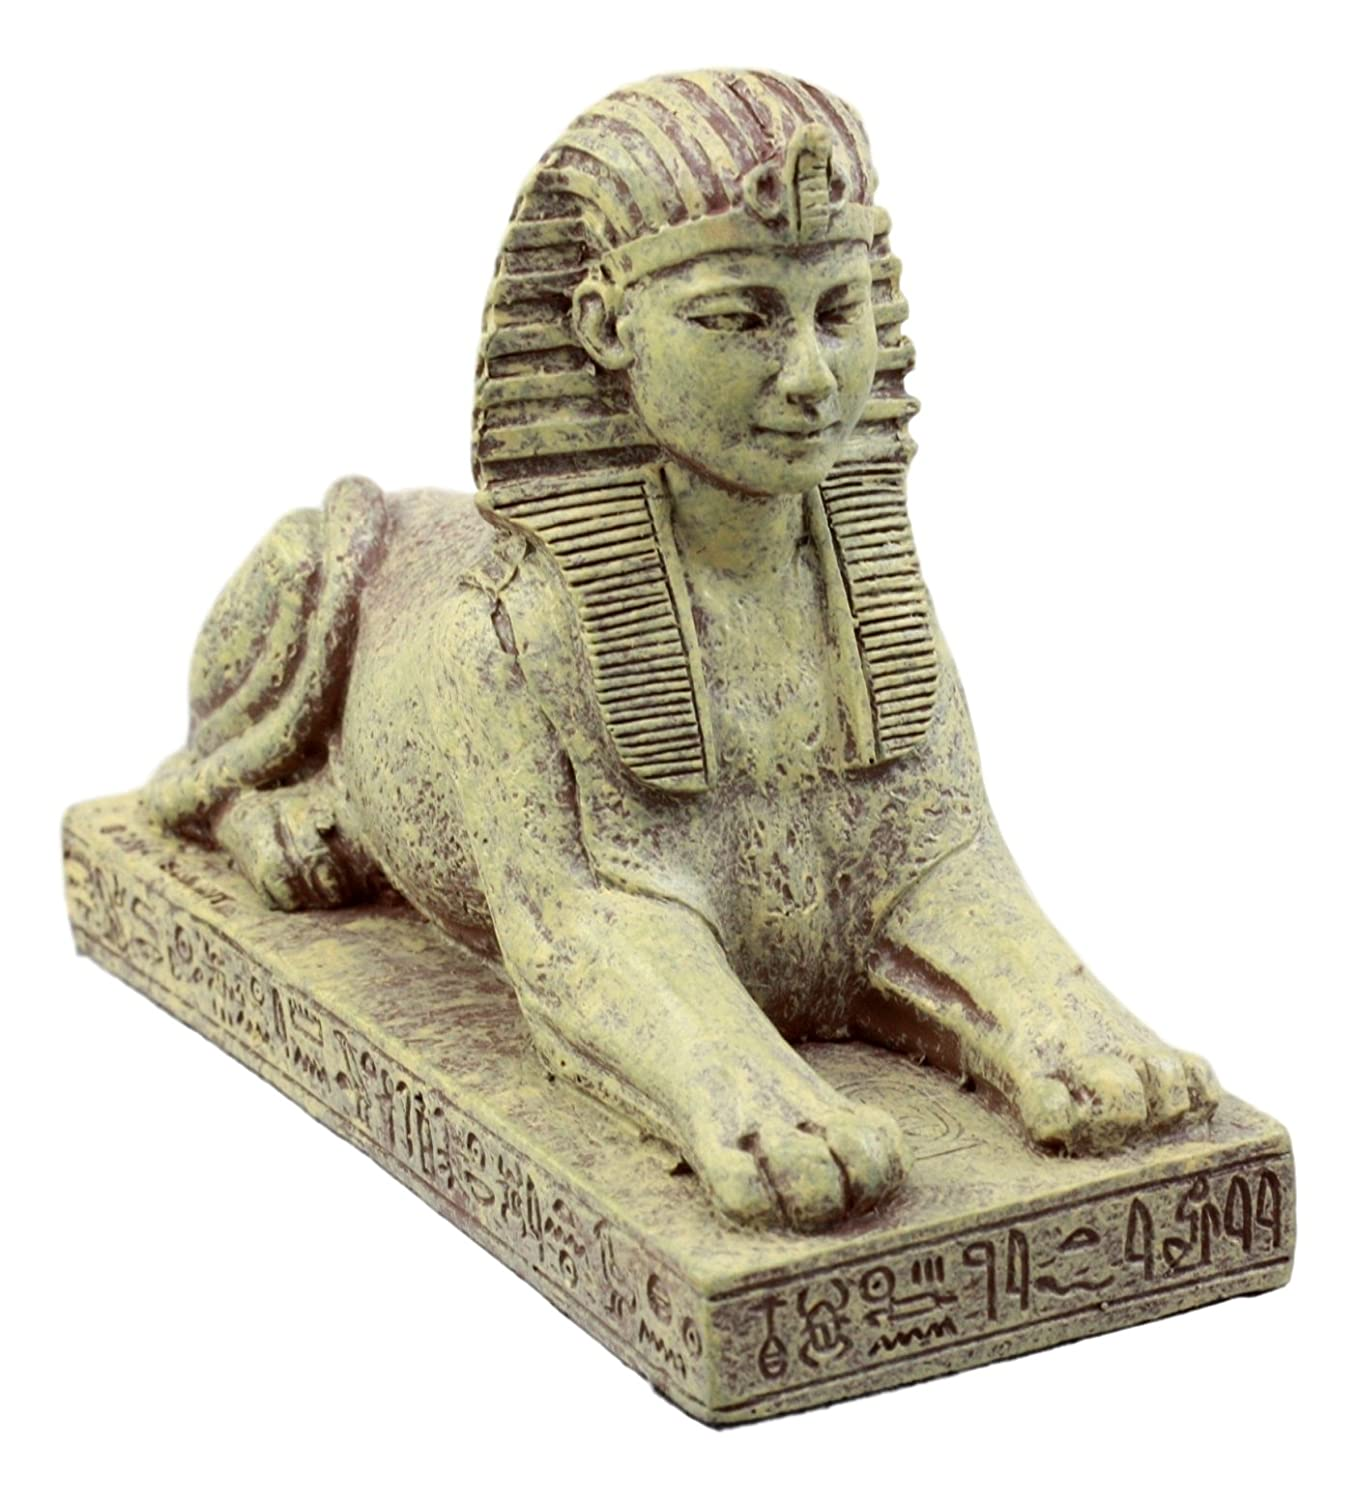 Ebros Gift Ancient Egyptian Guardian Sphinx Figurine 4.25 L Androsphinx Lion Decorative Collectible in Sand Clay Finish